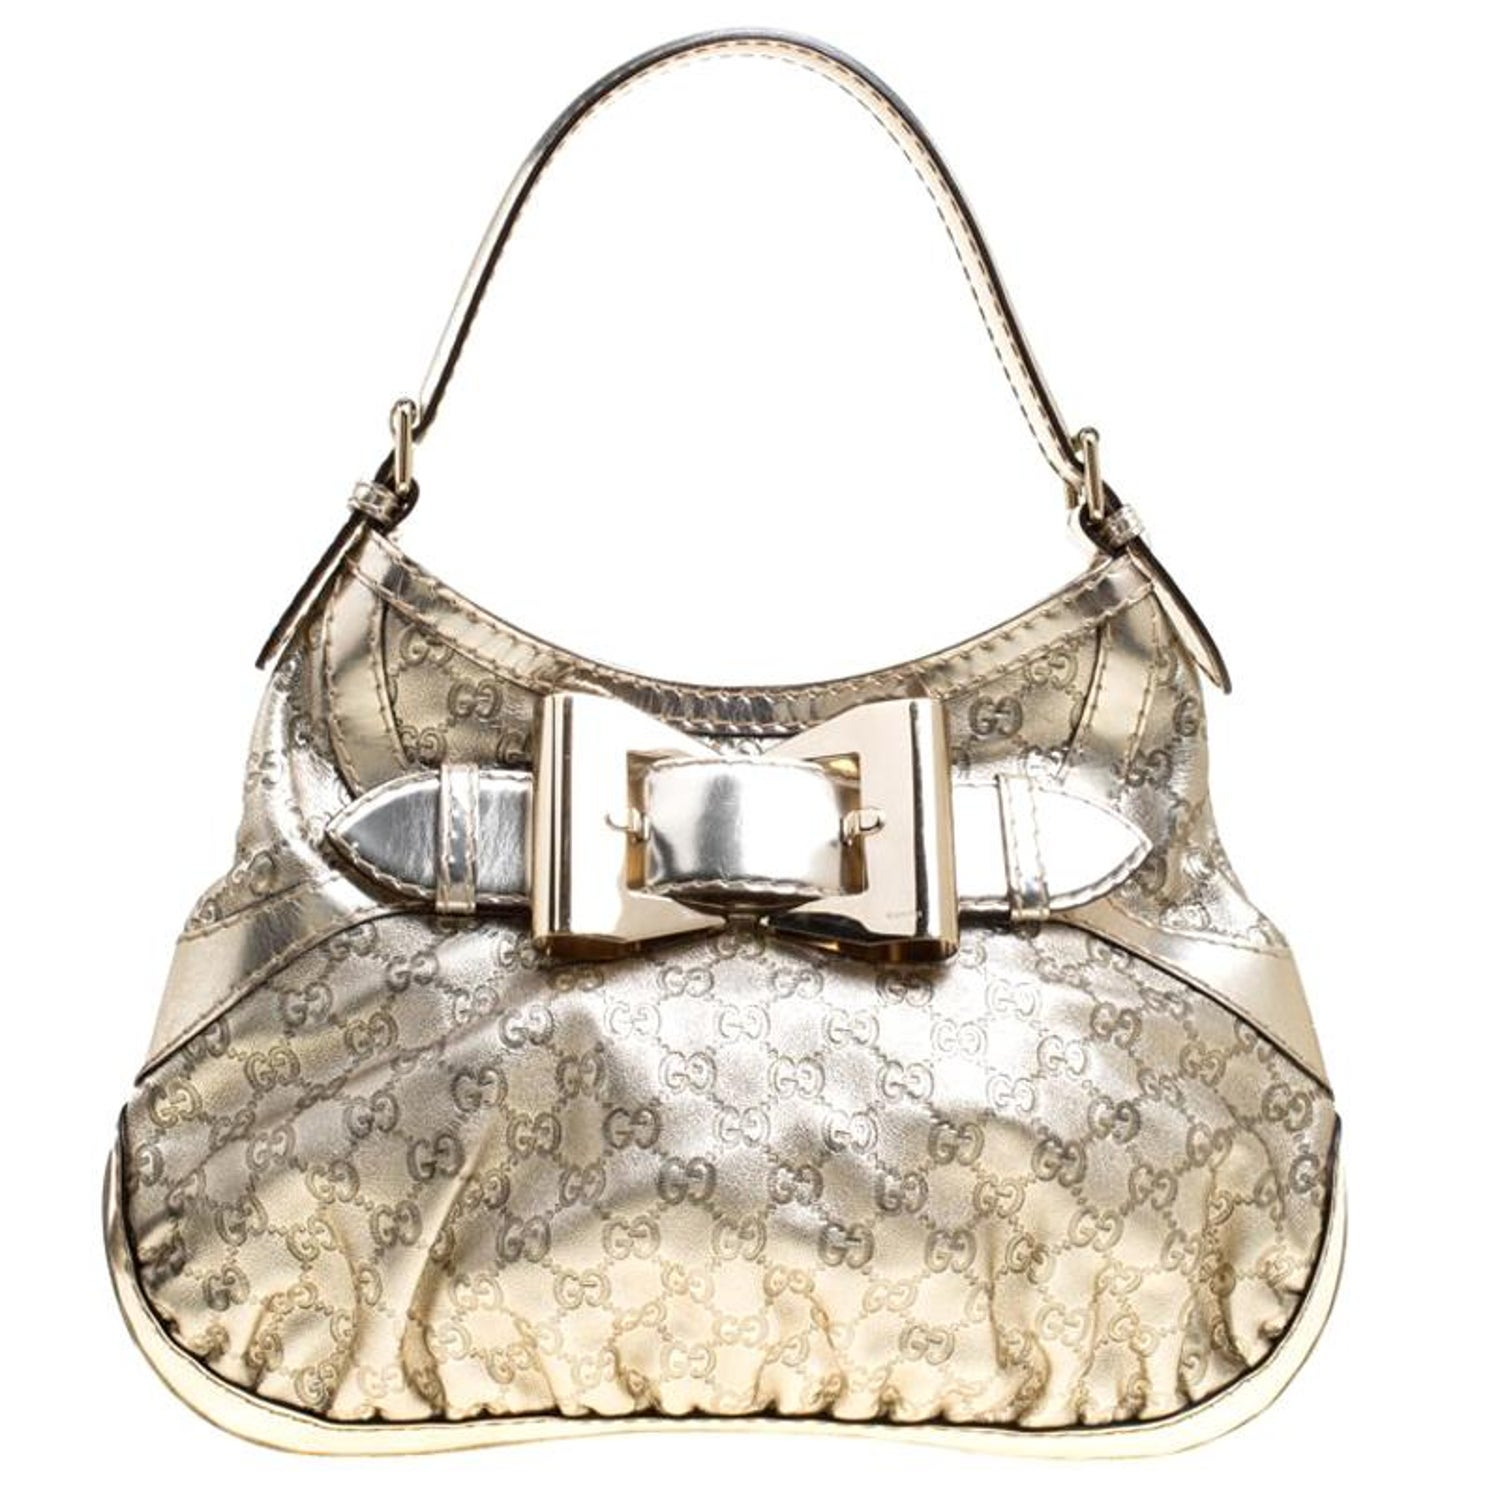 dc0384453 Gucci Light Gold Guccissima Leather Medium Queen Hobo For Sale at 1stdibs